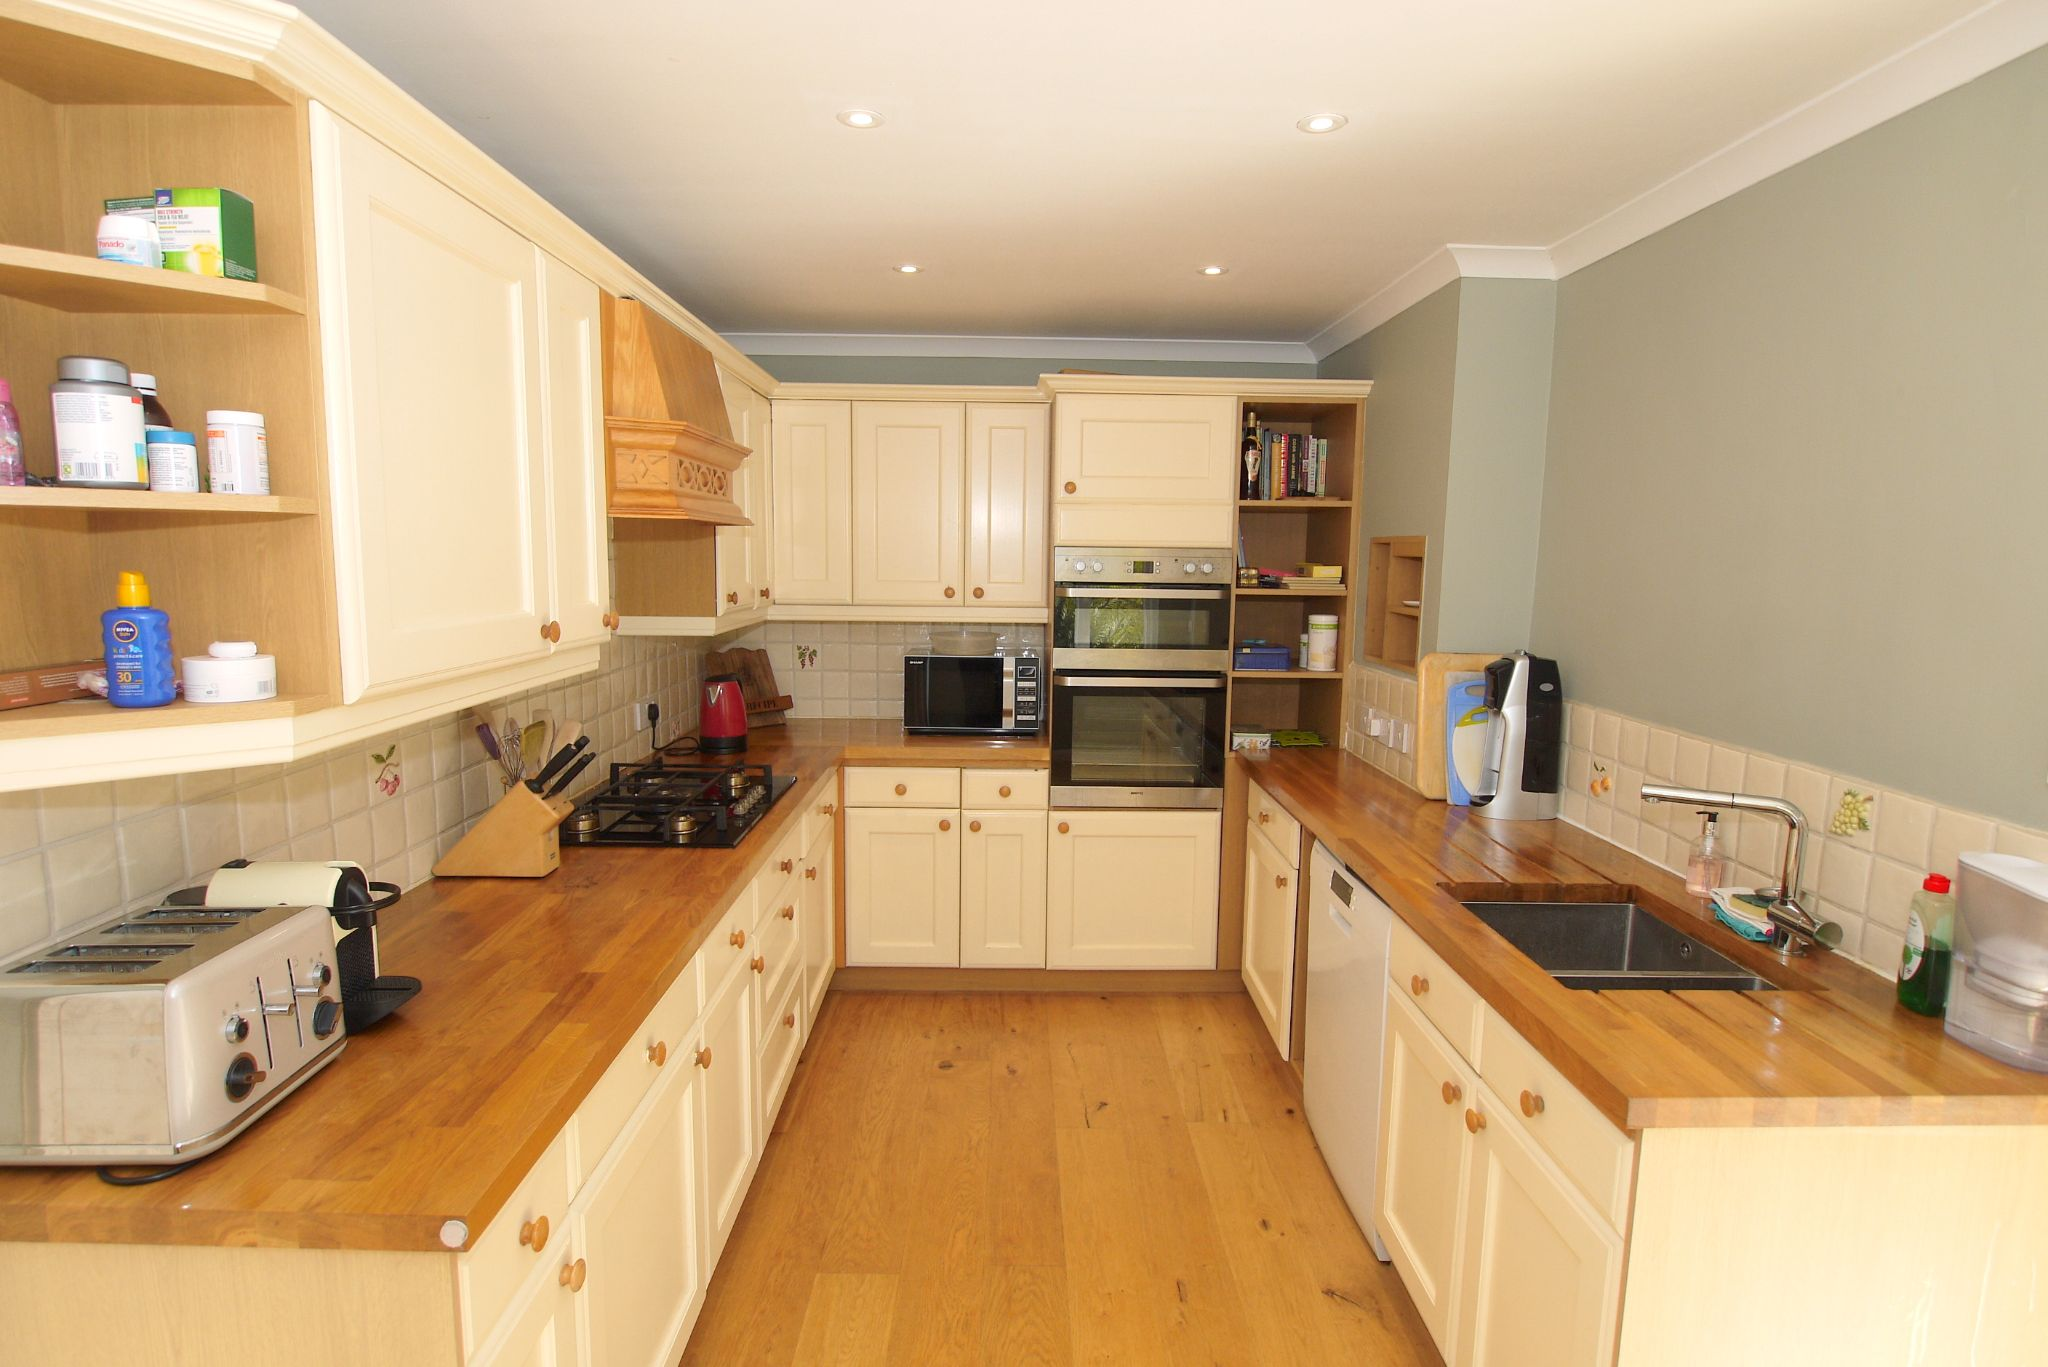 5 bedroom detached house Sale Agreed in Sevenoaks - Photograph 6